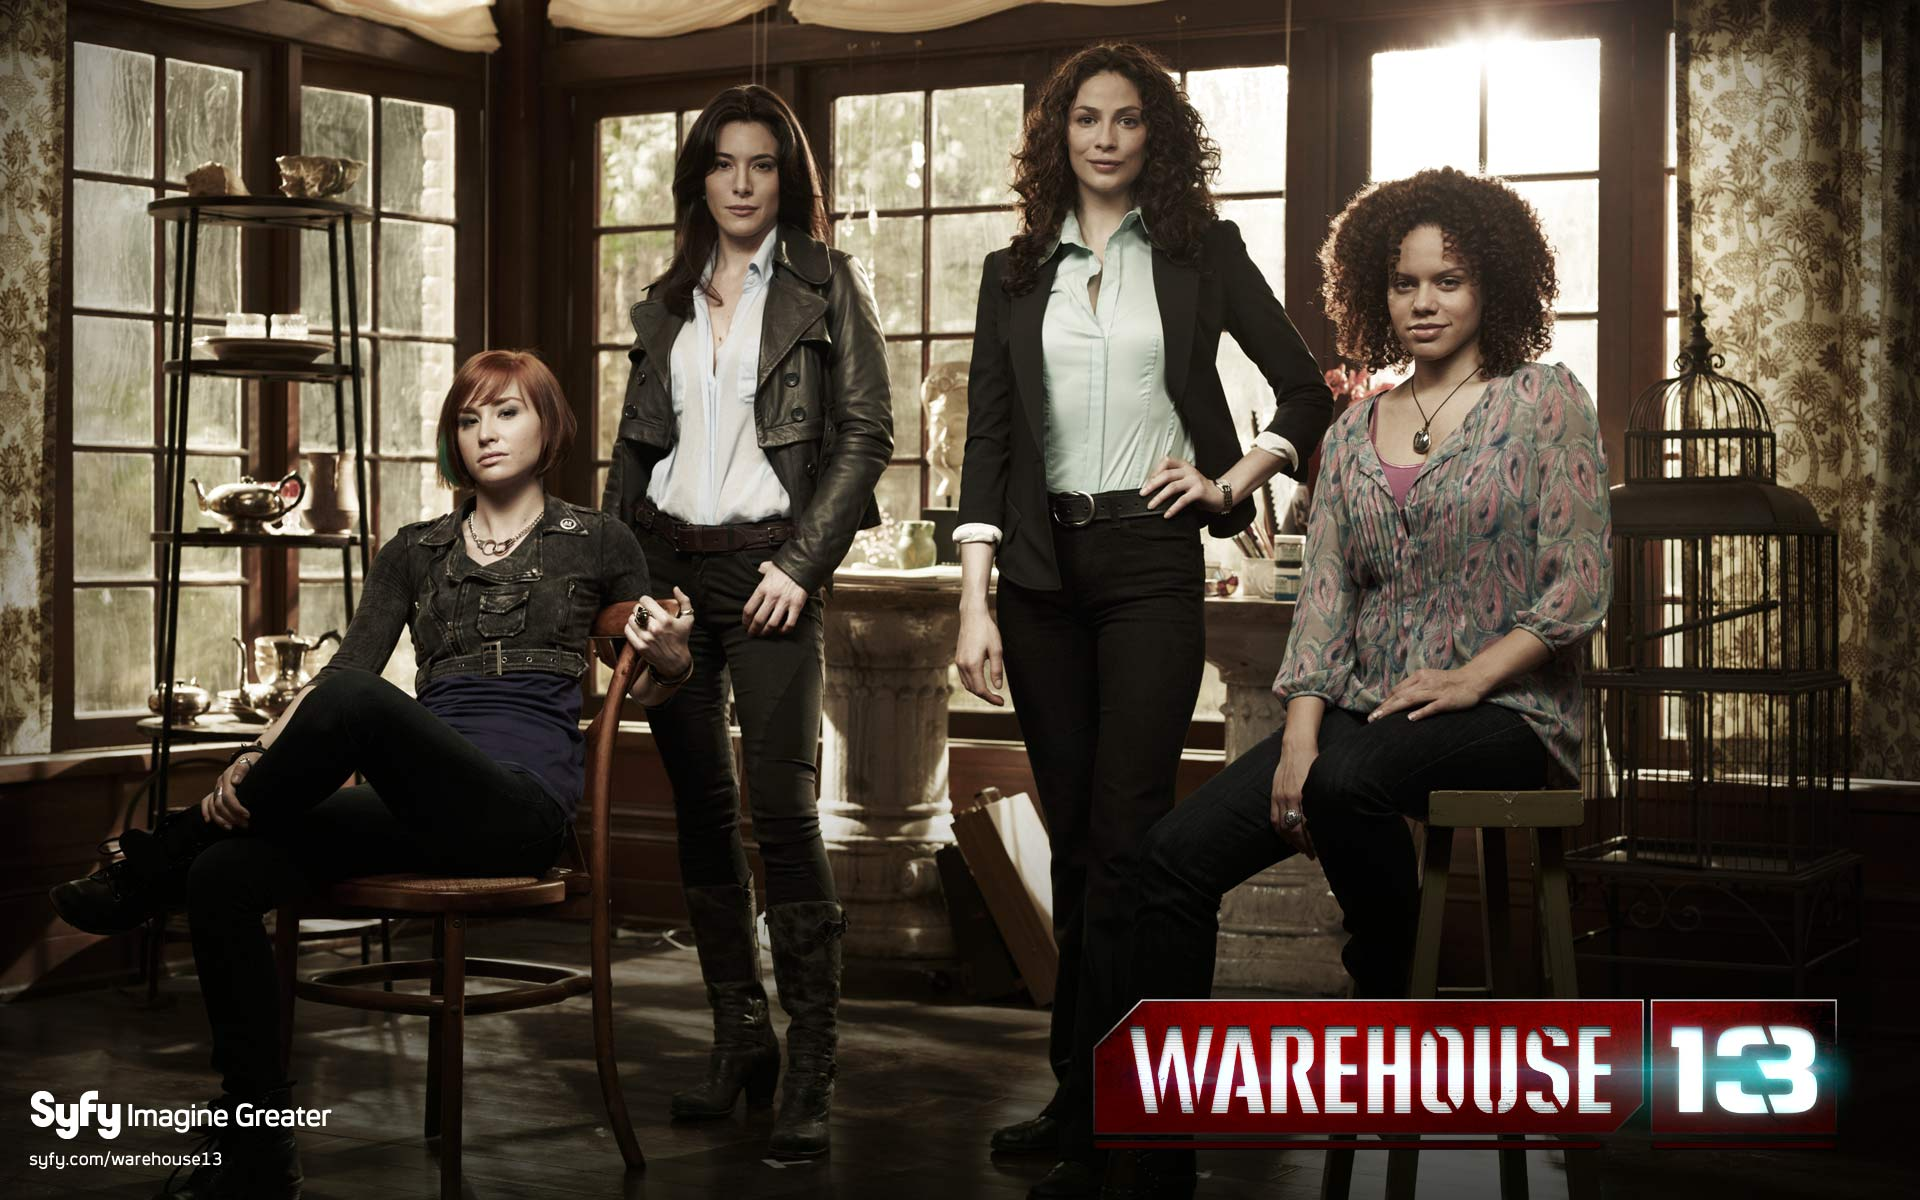 HQ Warehouse 13 Wallpapers | File 256.2Kb